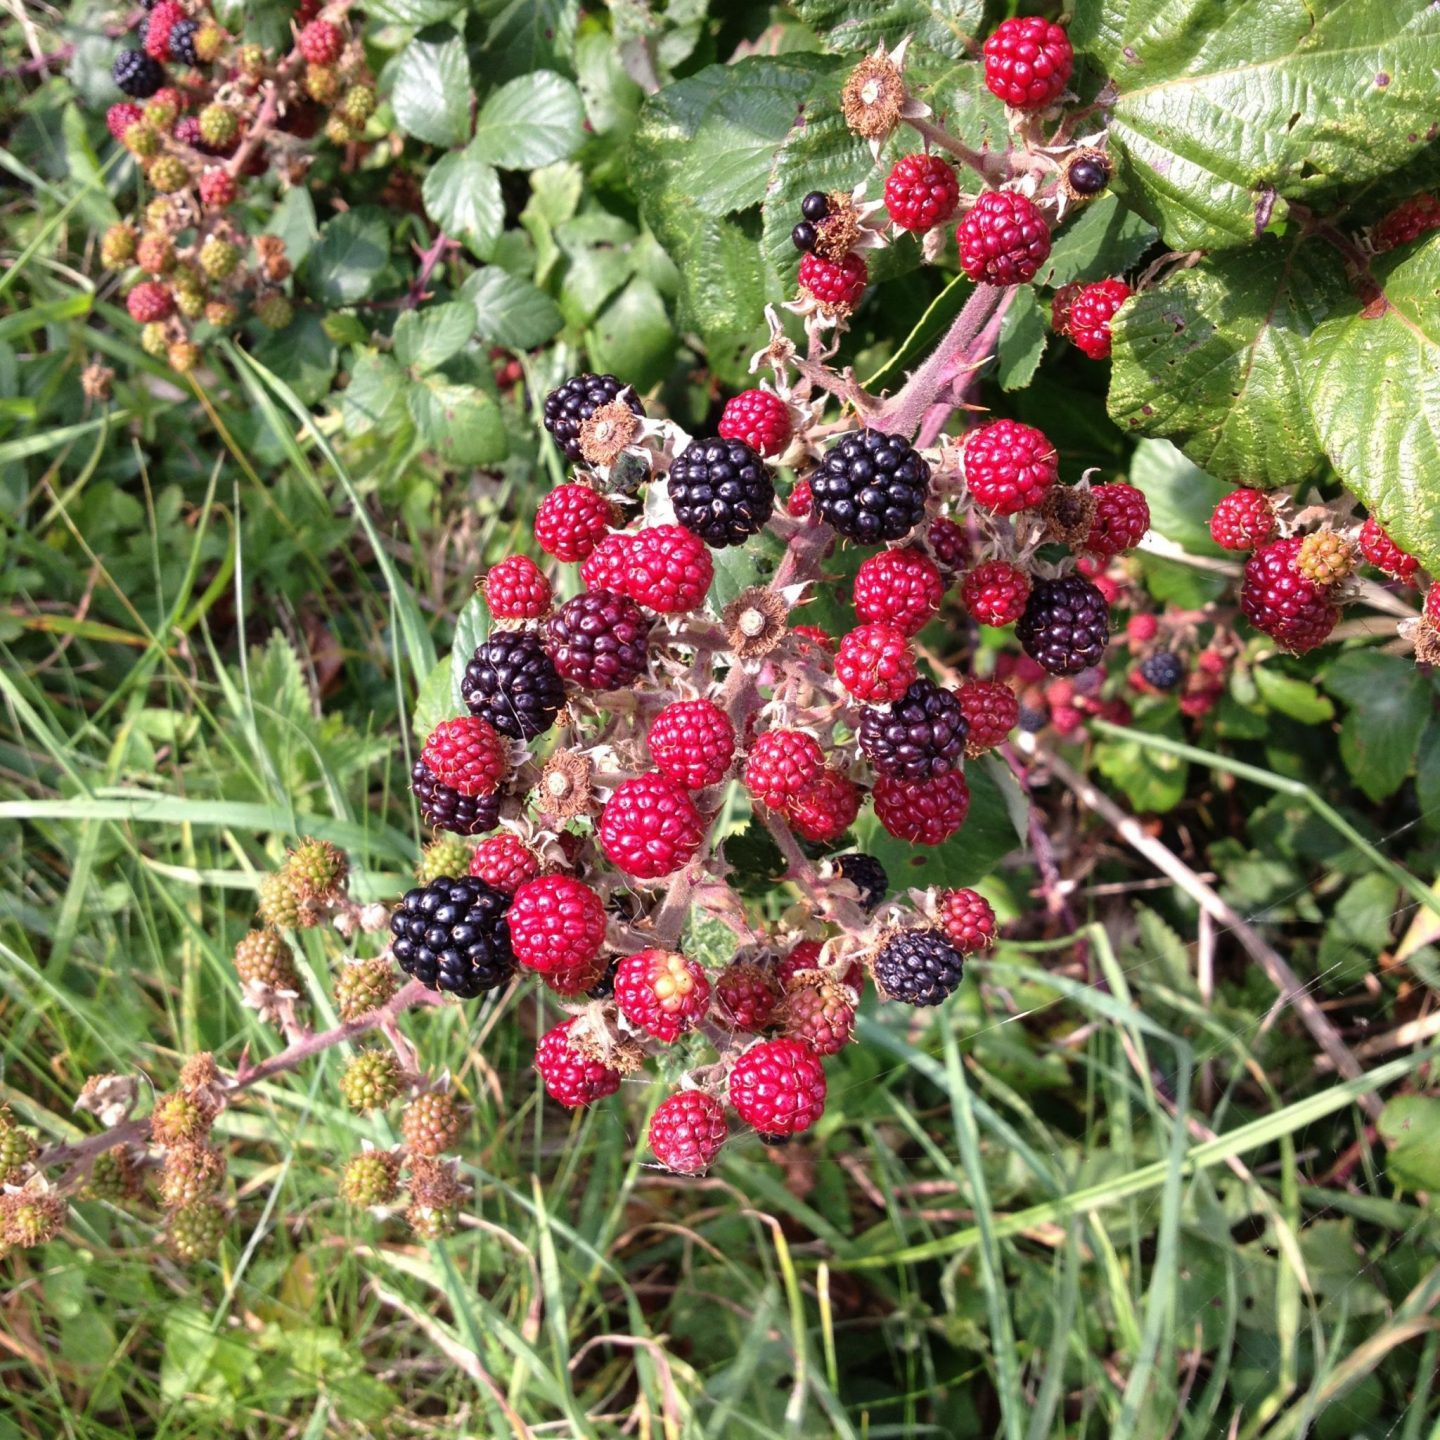 Blackberries on the South West Coast Path